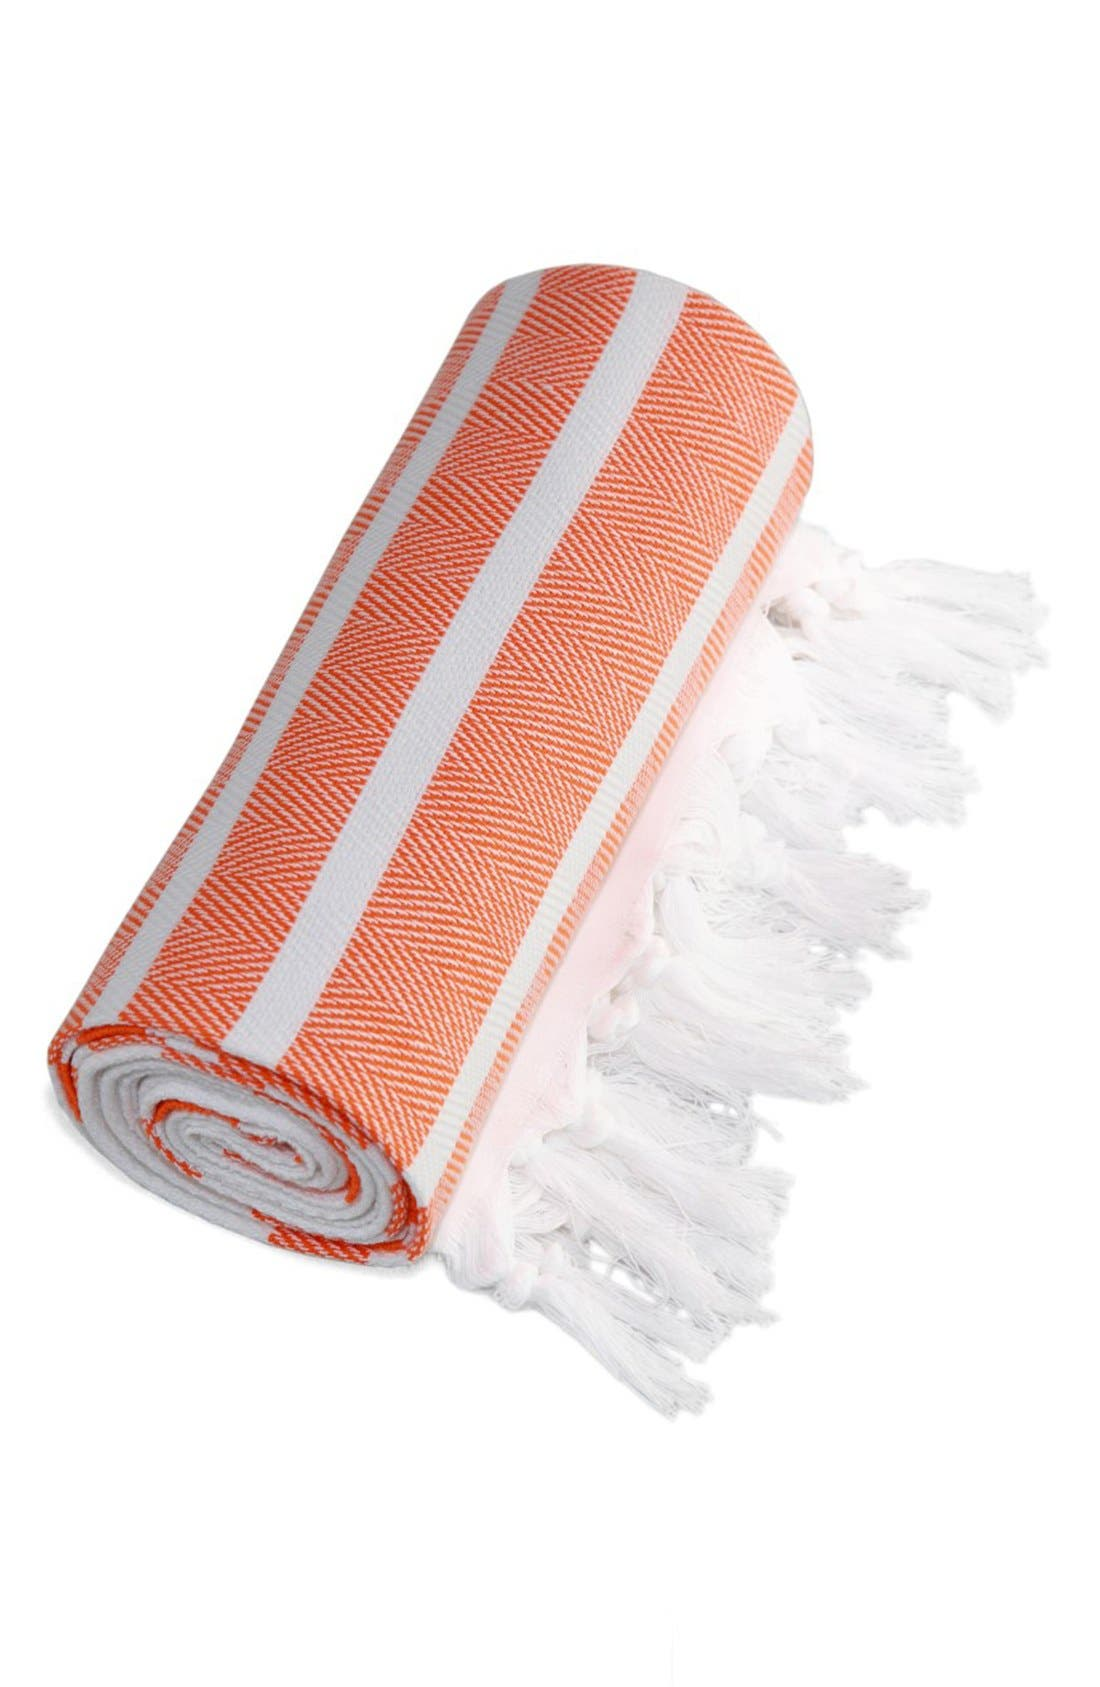 Herringbone Striped Turkish Pestemal Towel,                             Alternate thumbnail 2, color,                             800